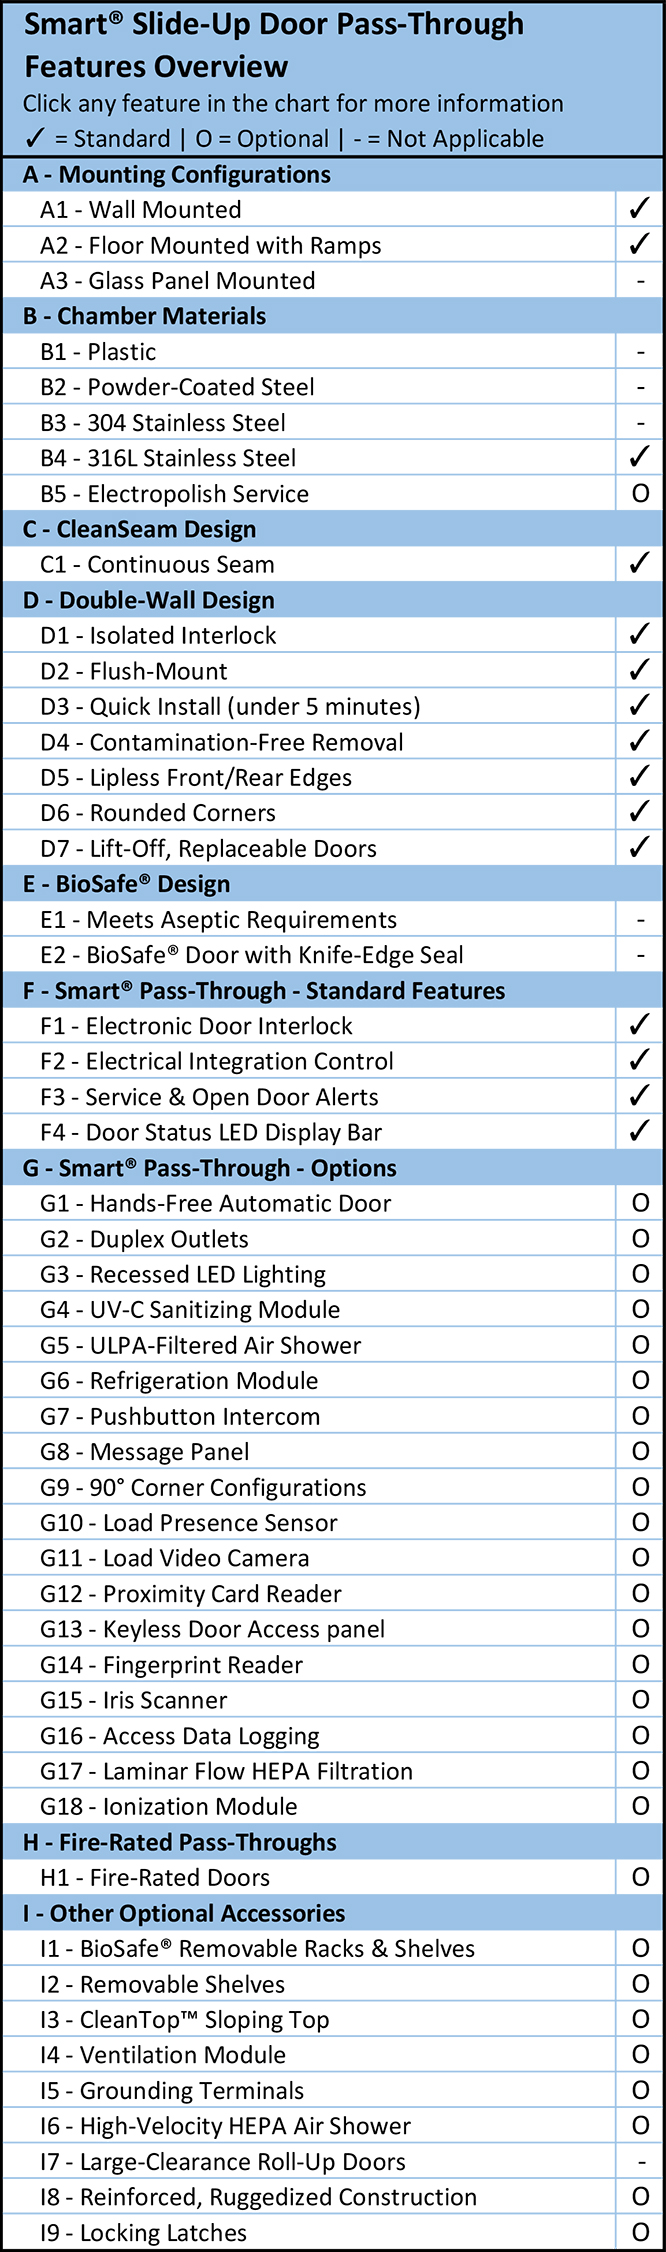 Smart® Slide-Up Door Pass-Through Feature Overview Chart